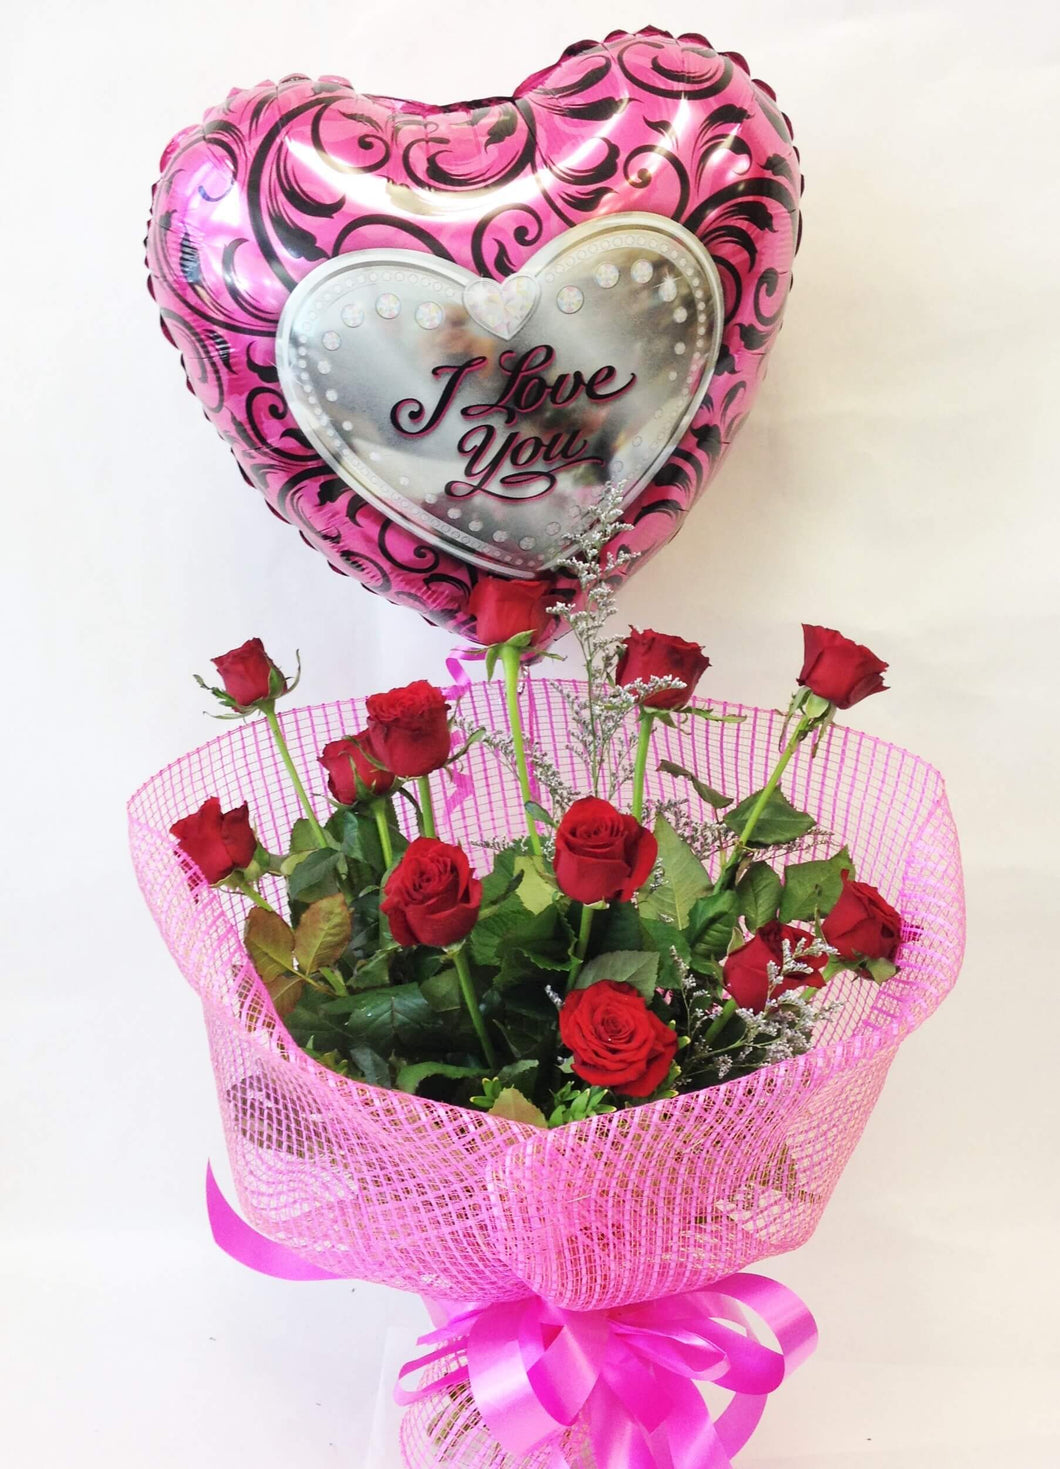 12 roses in hot pink with a helium balloon